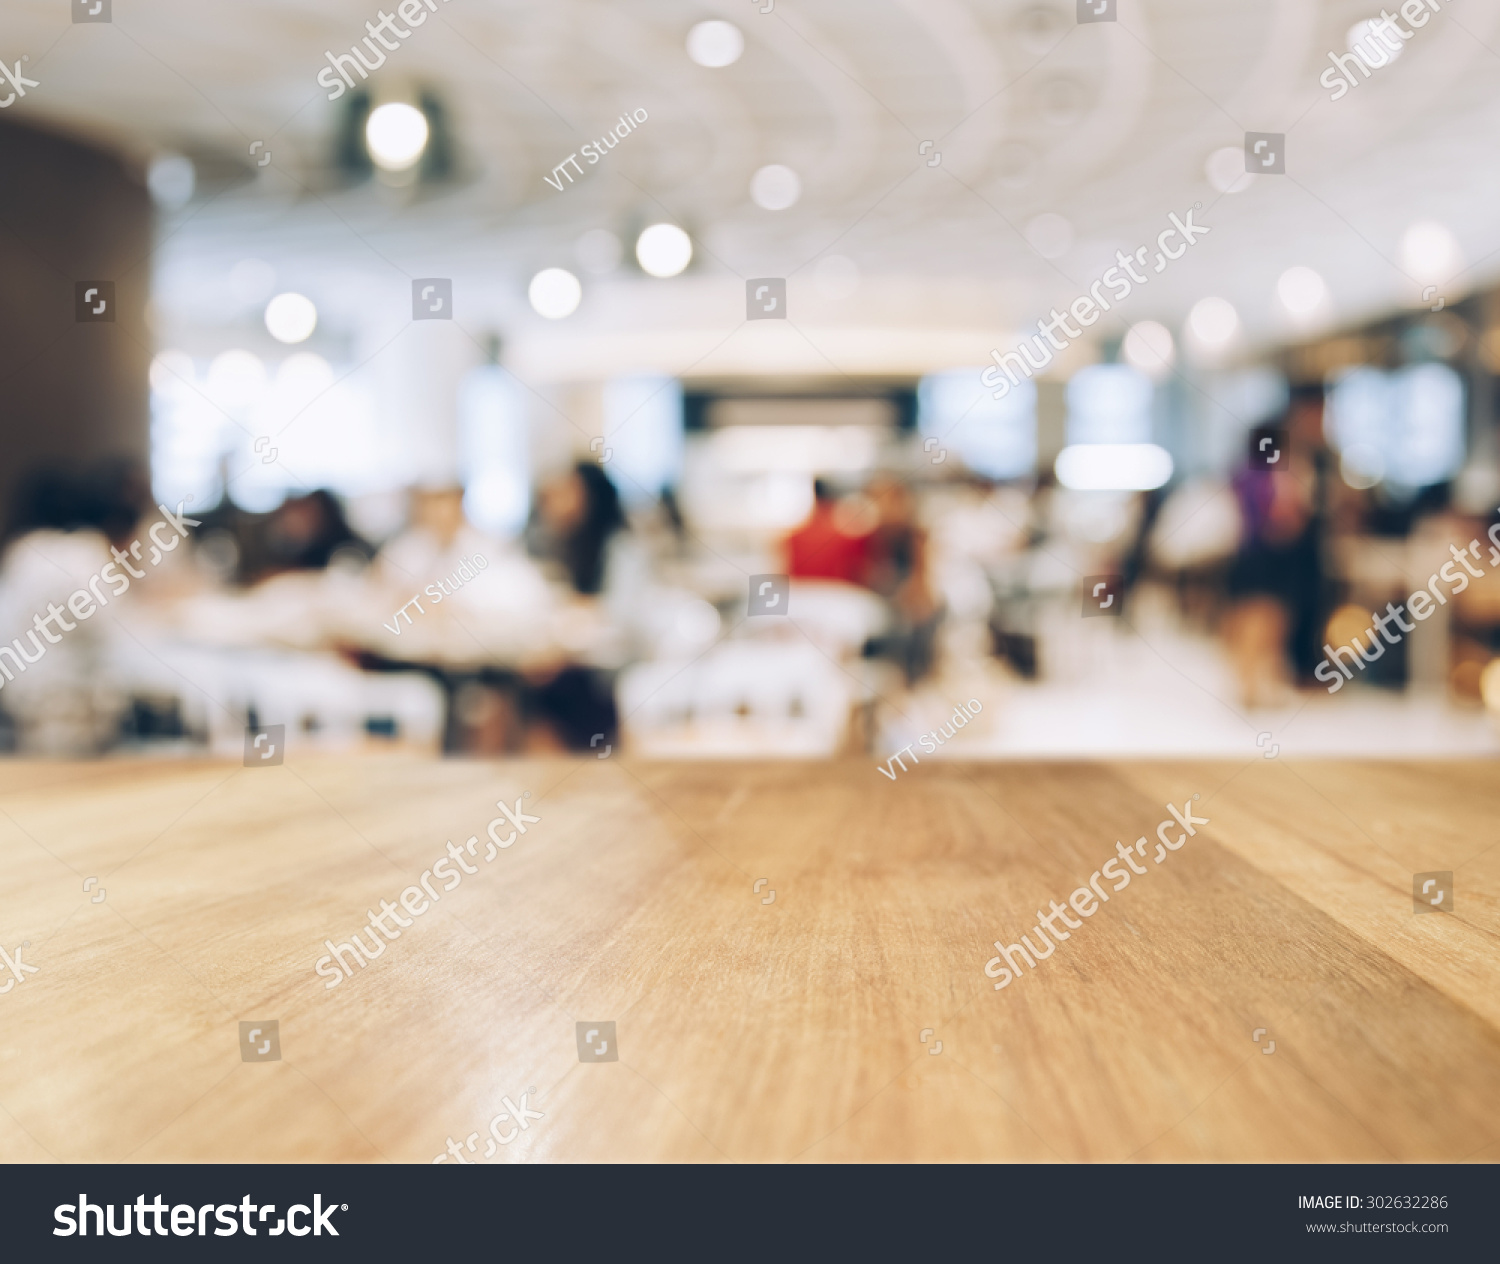 Table top counter with blurred people and restaurant shop